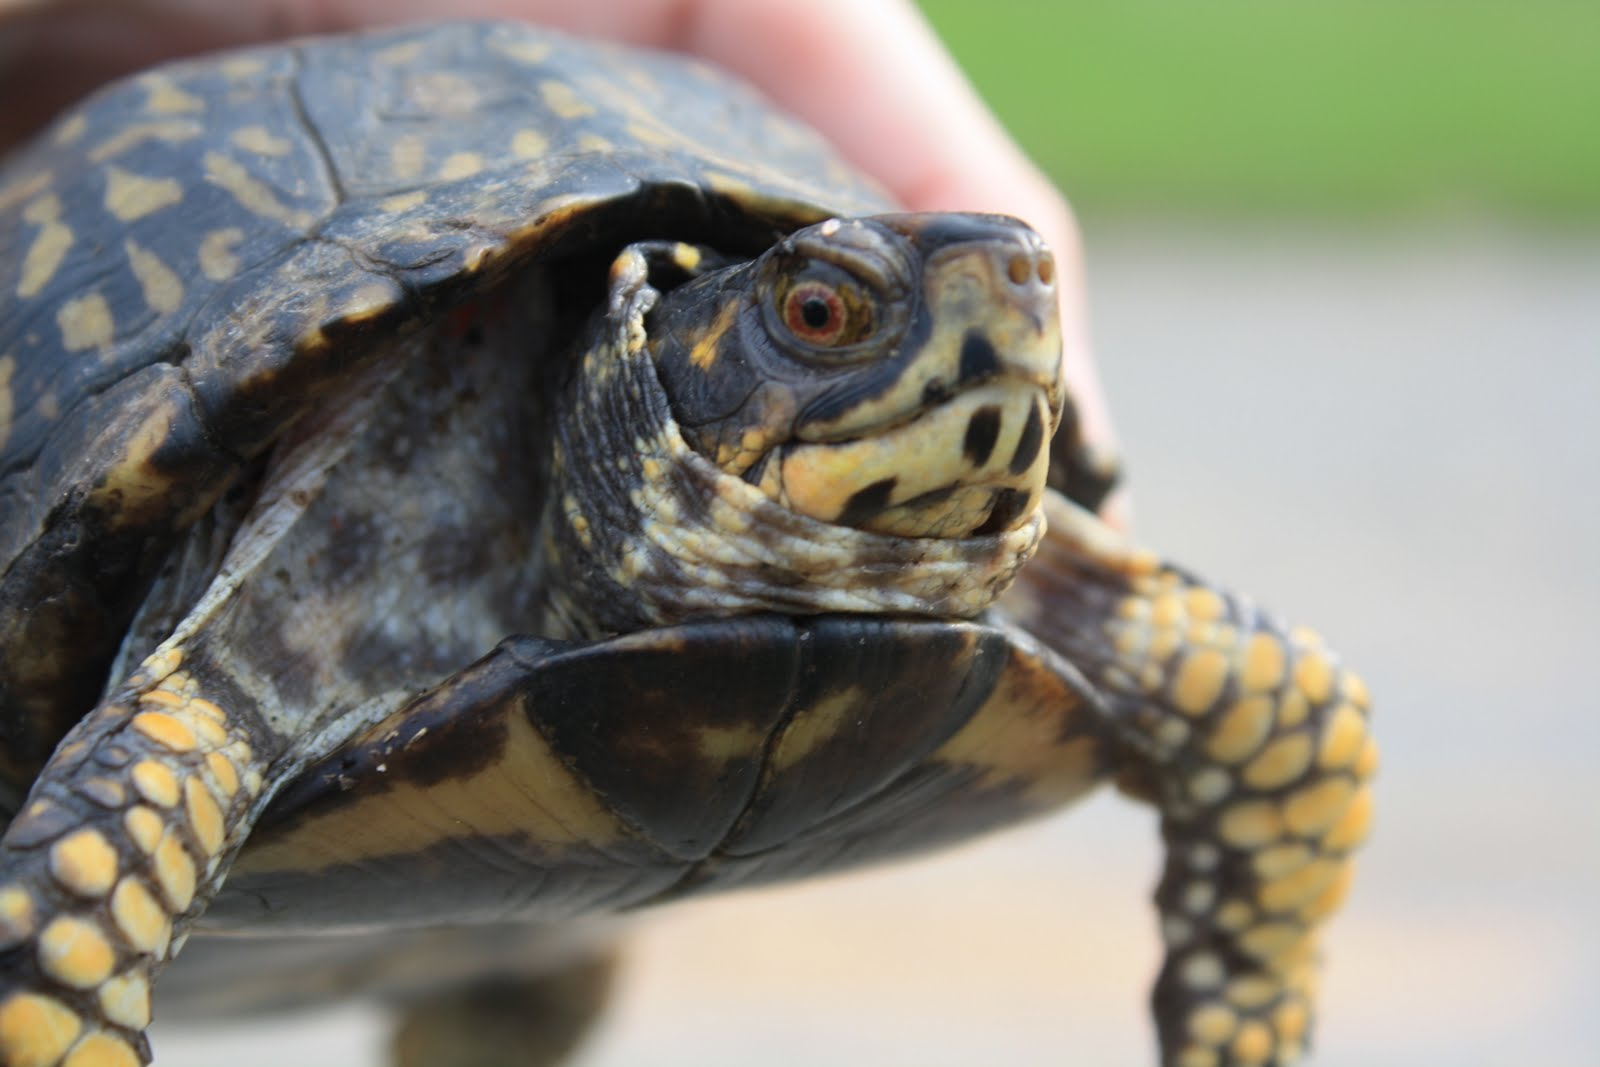 Freshwater Turtles in Catastrophic Decline Trail of the Trail